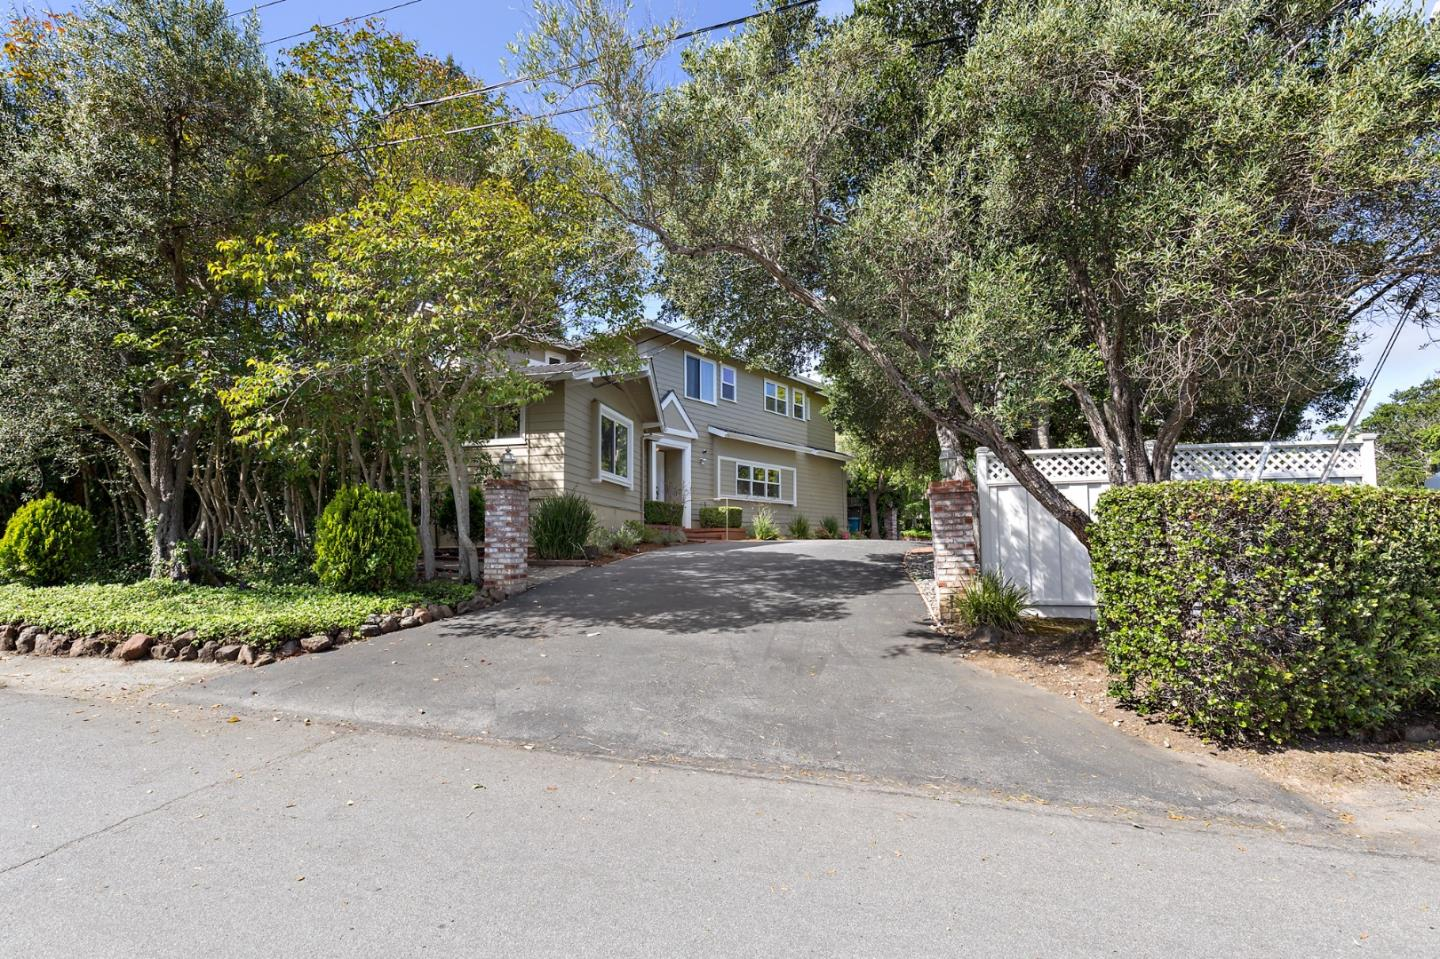 3123 Hillside DR, Burlingame, California